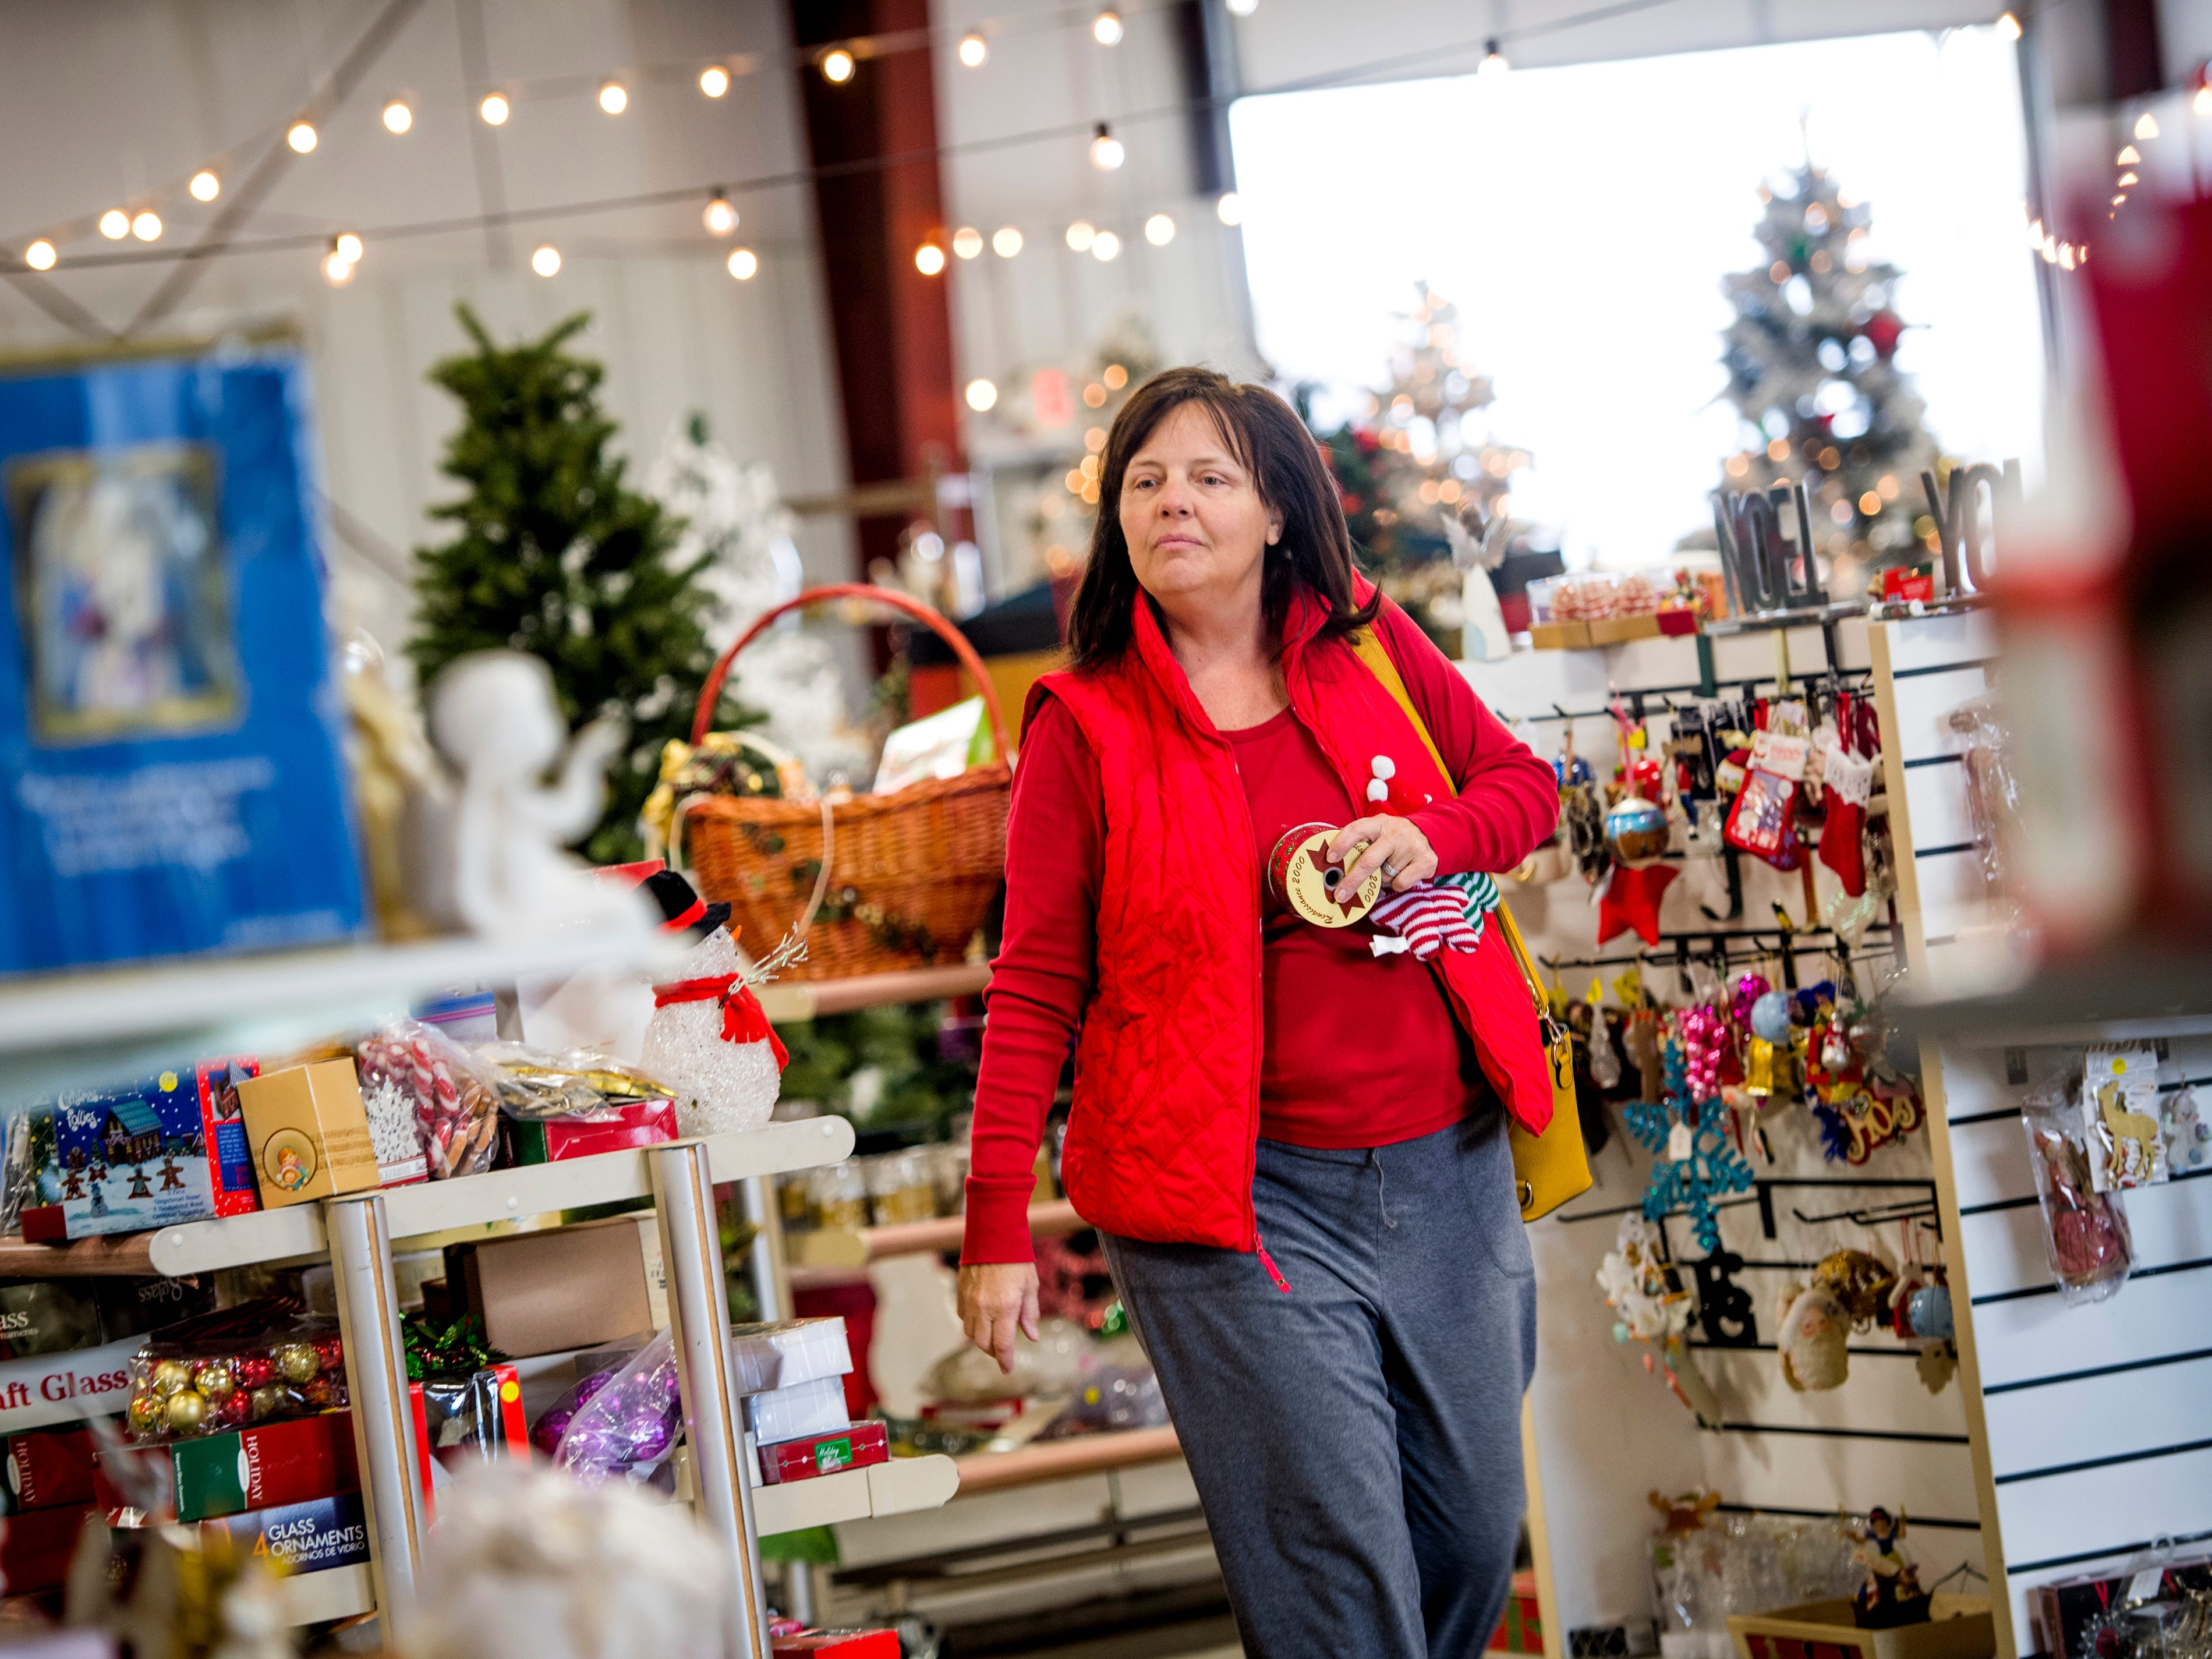 Customers browse Christmas decorations for sale at the KARM Christmas Store located at 9629 Parkside Drive in Knoxville on Tuesday, November 13, 2018.